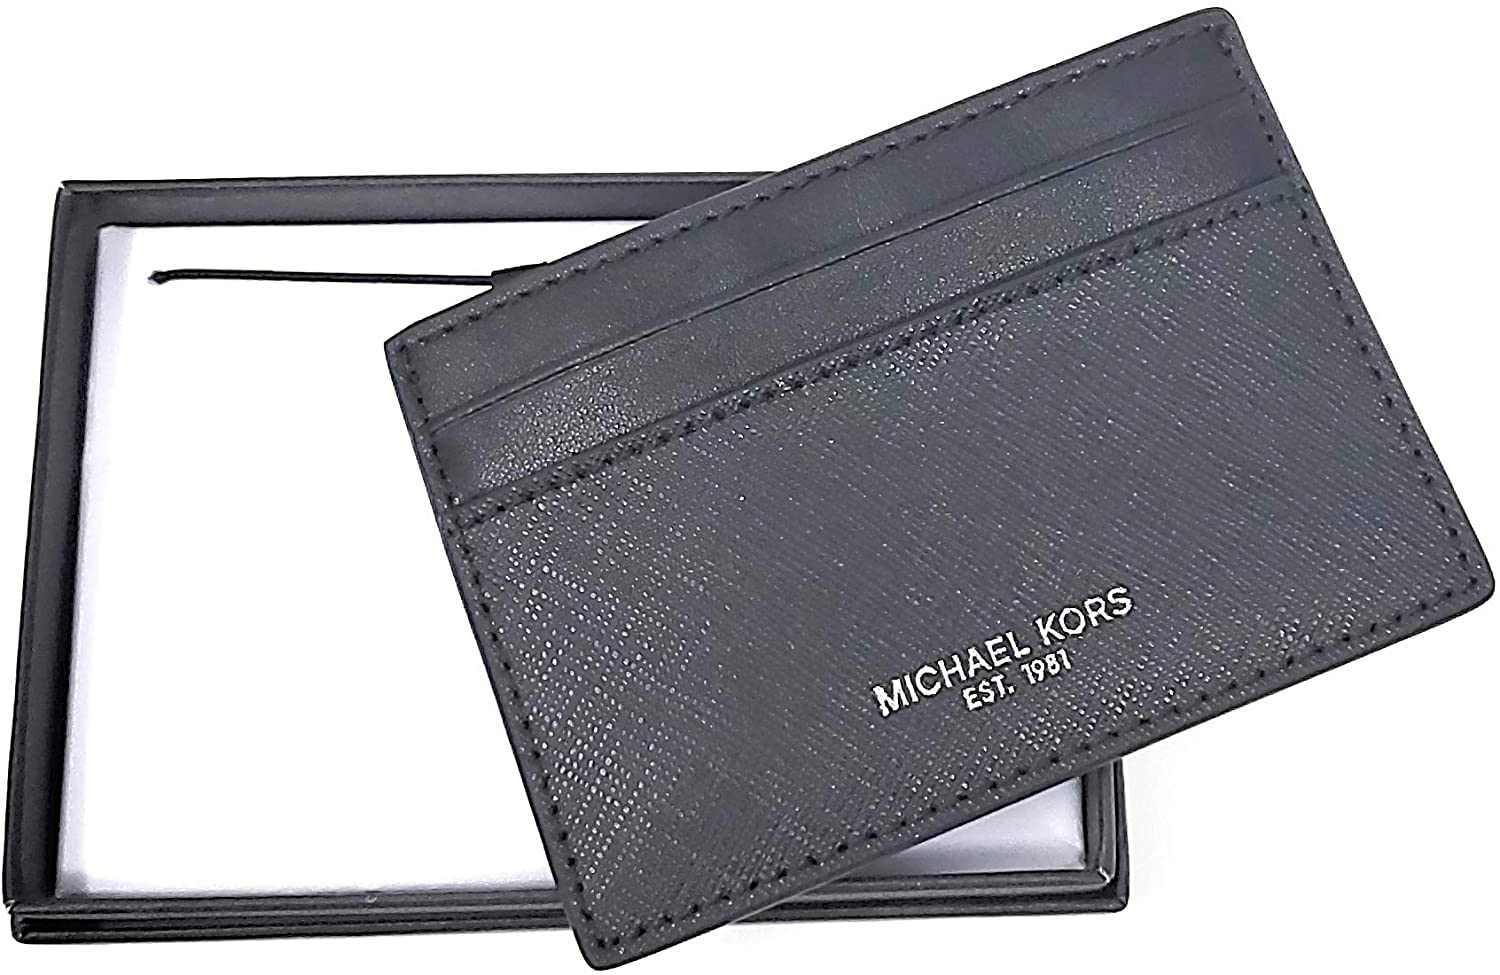 Michael Kors Andy Leather Card Case/Wallet